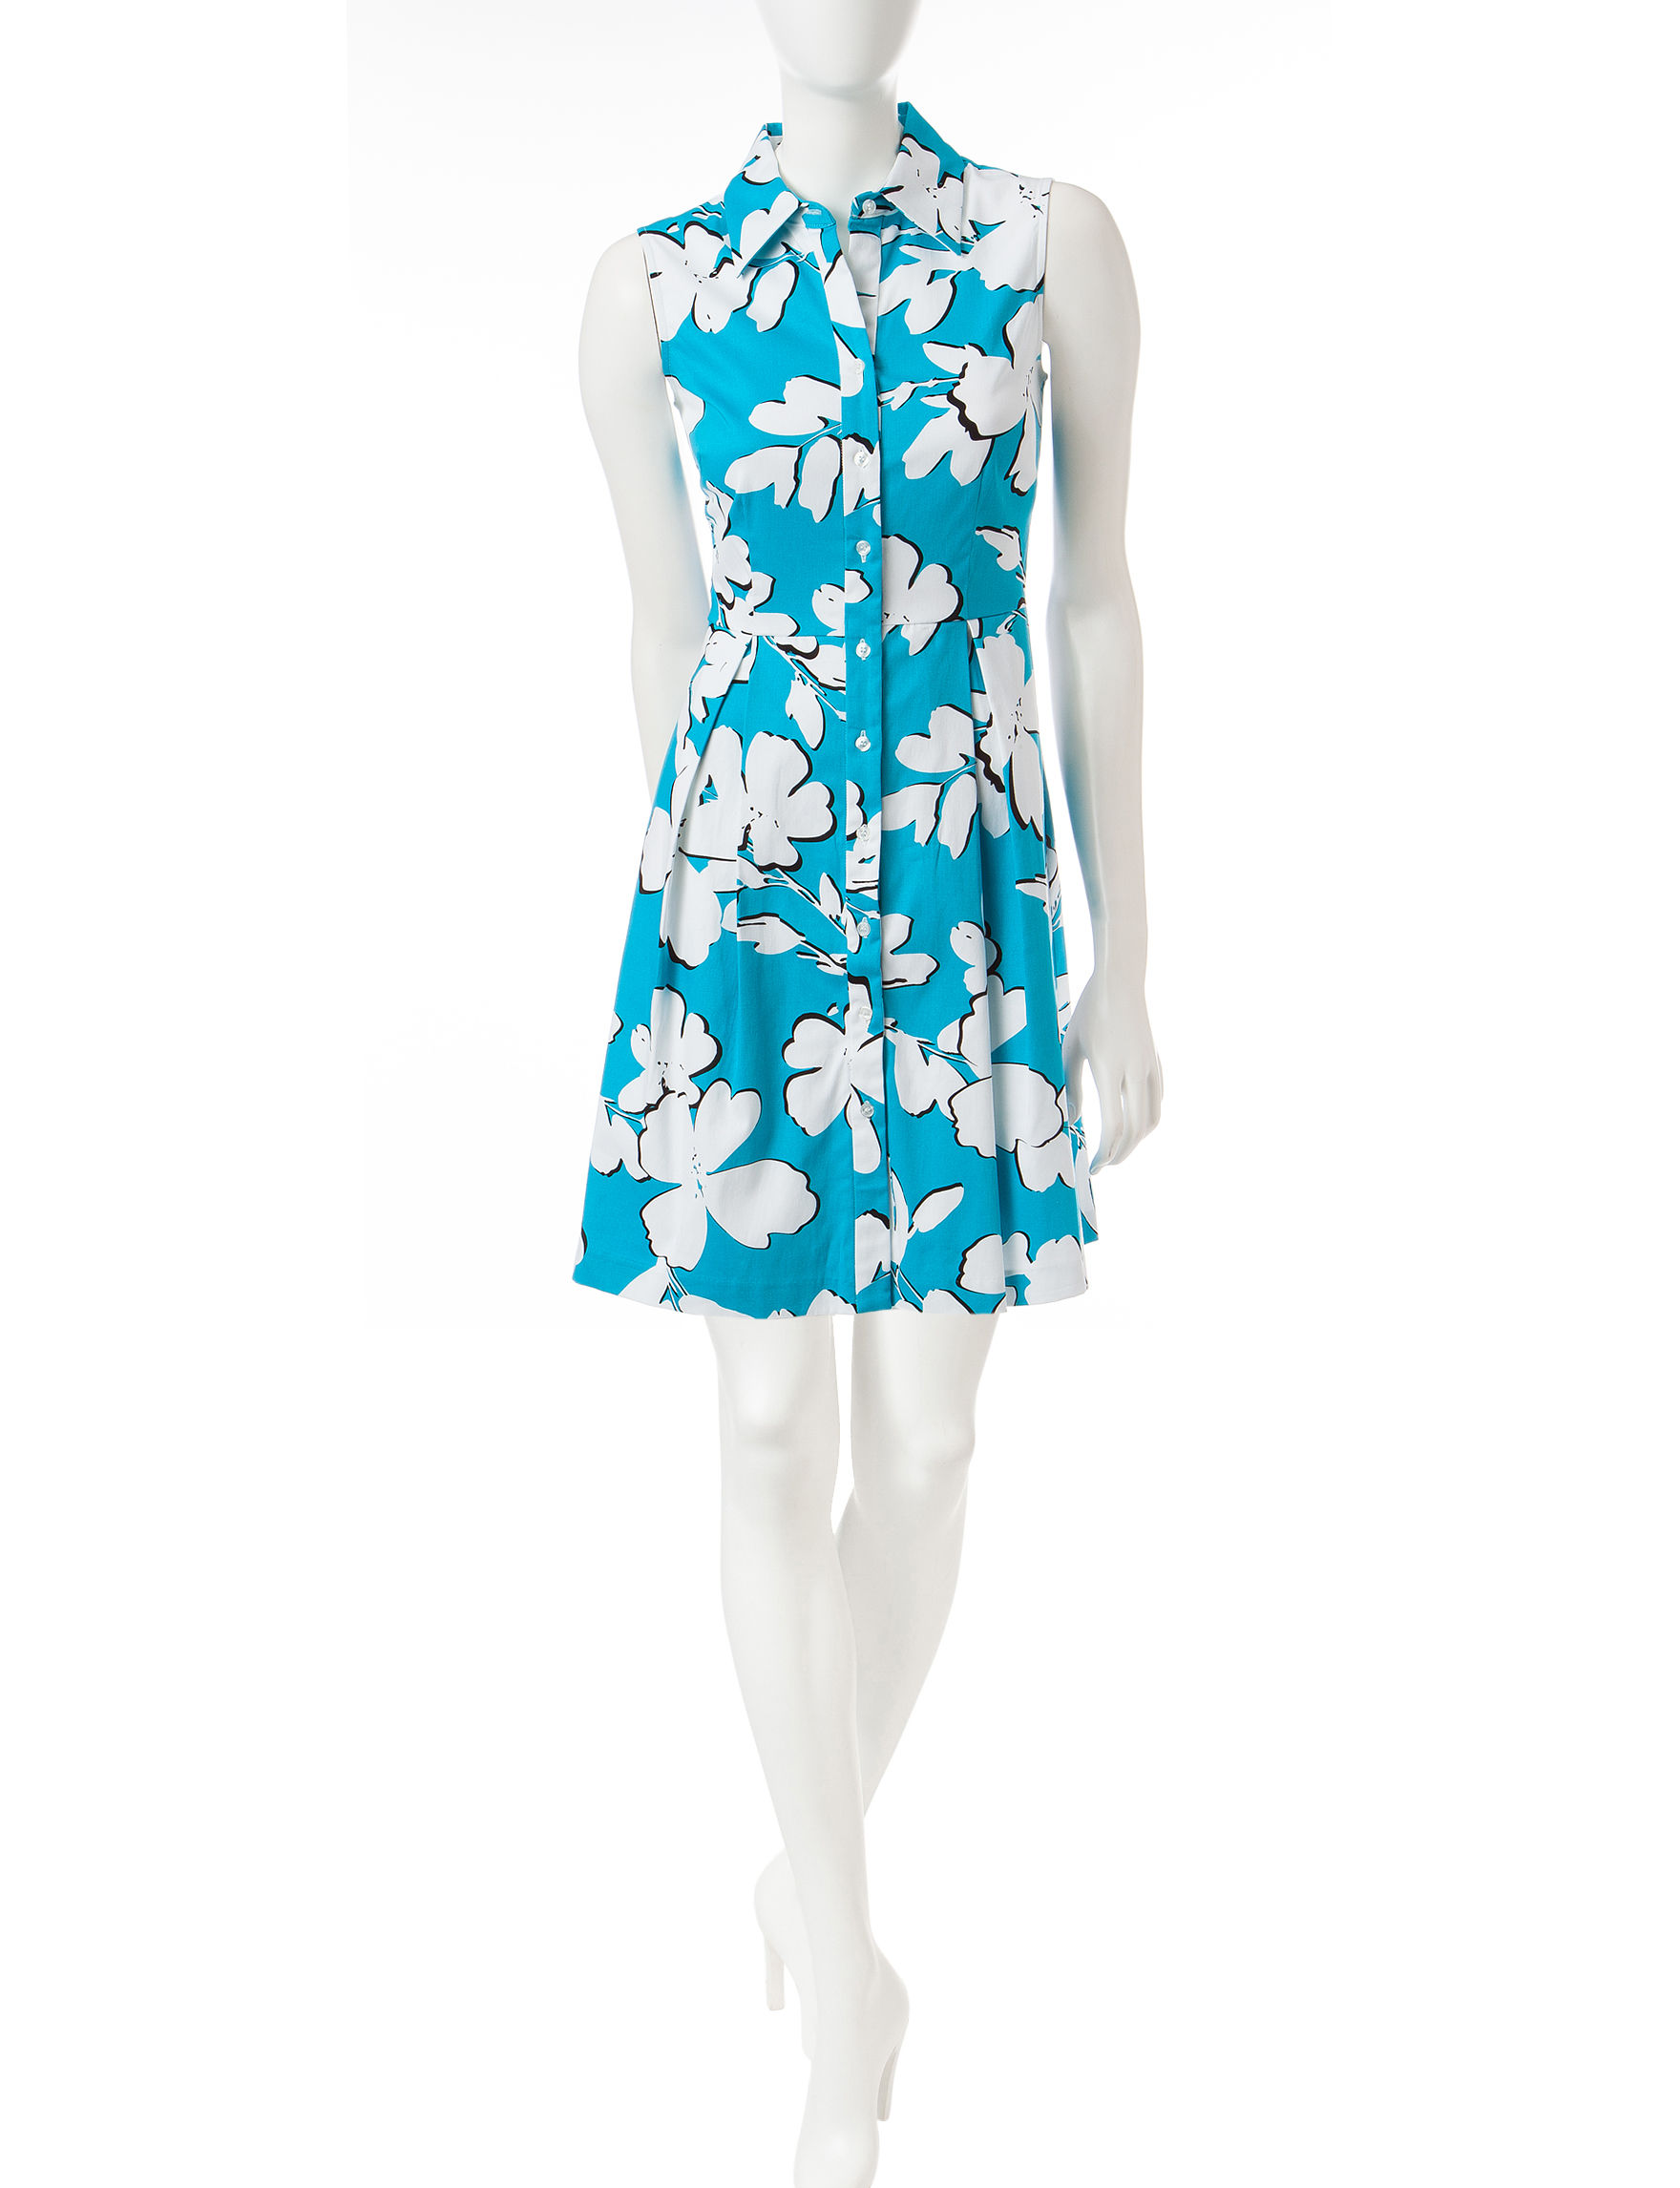 Studio 1 Turquoise Everyday & Casual Sundresses